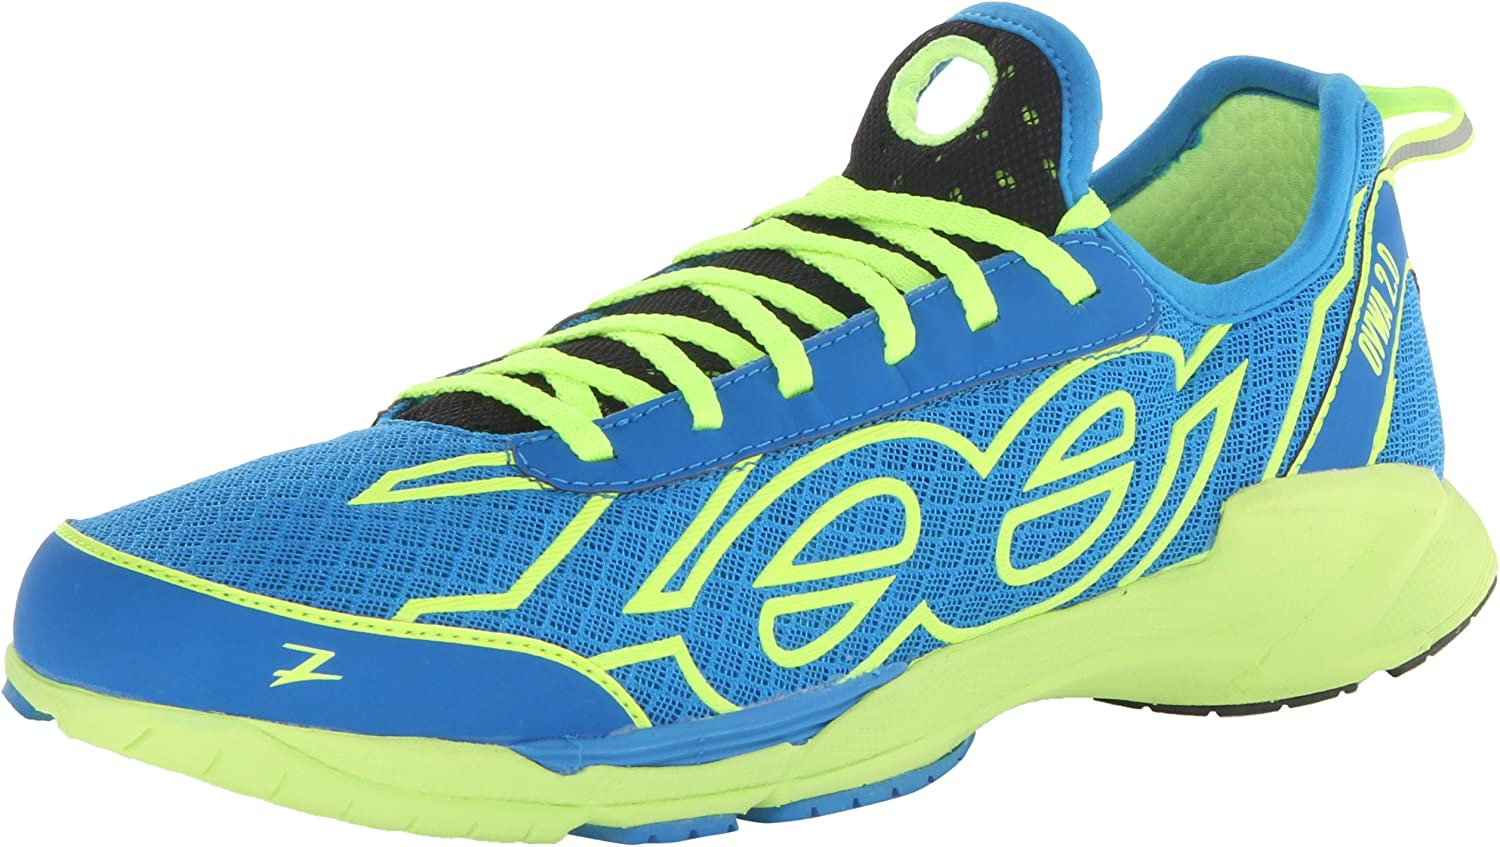 Zoot Men s Ovwa 2.0 Running Shoe